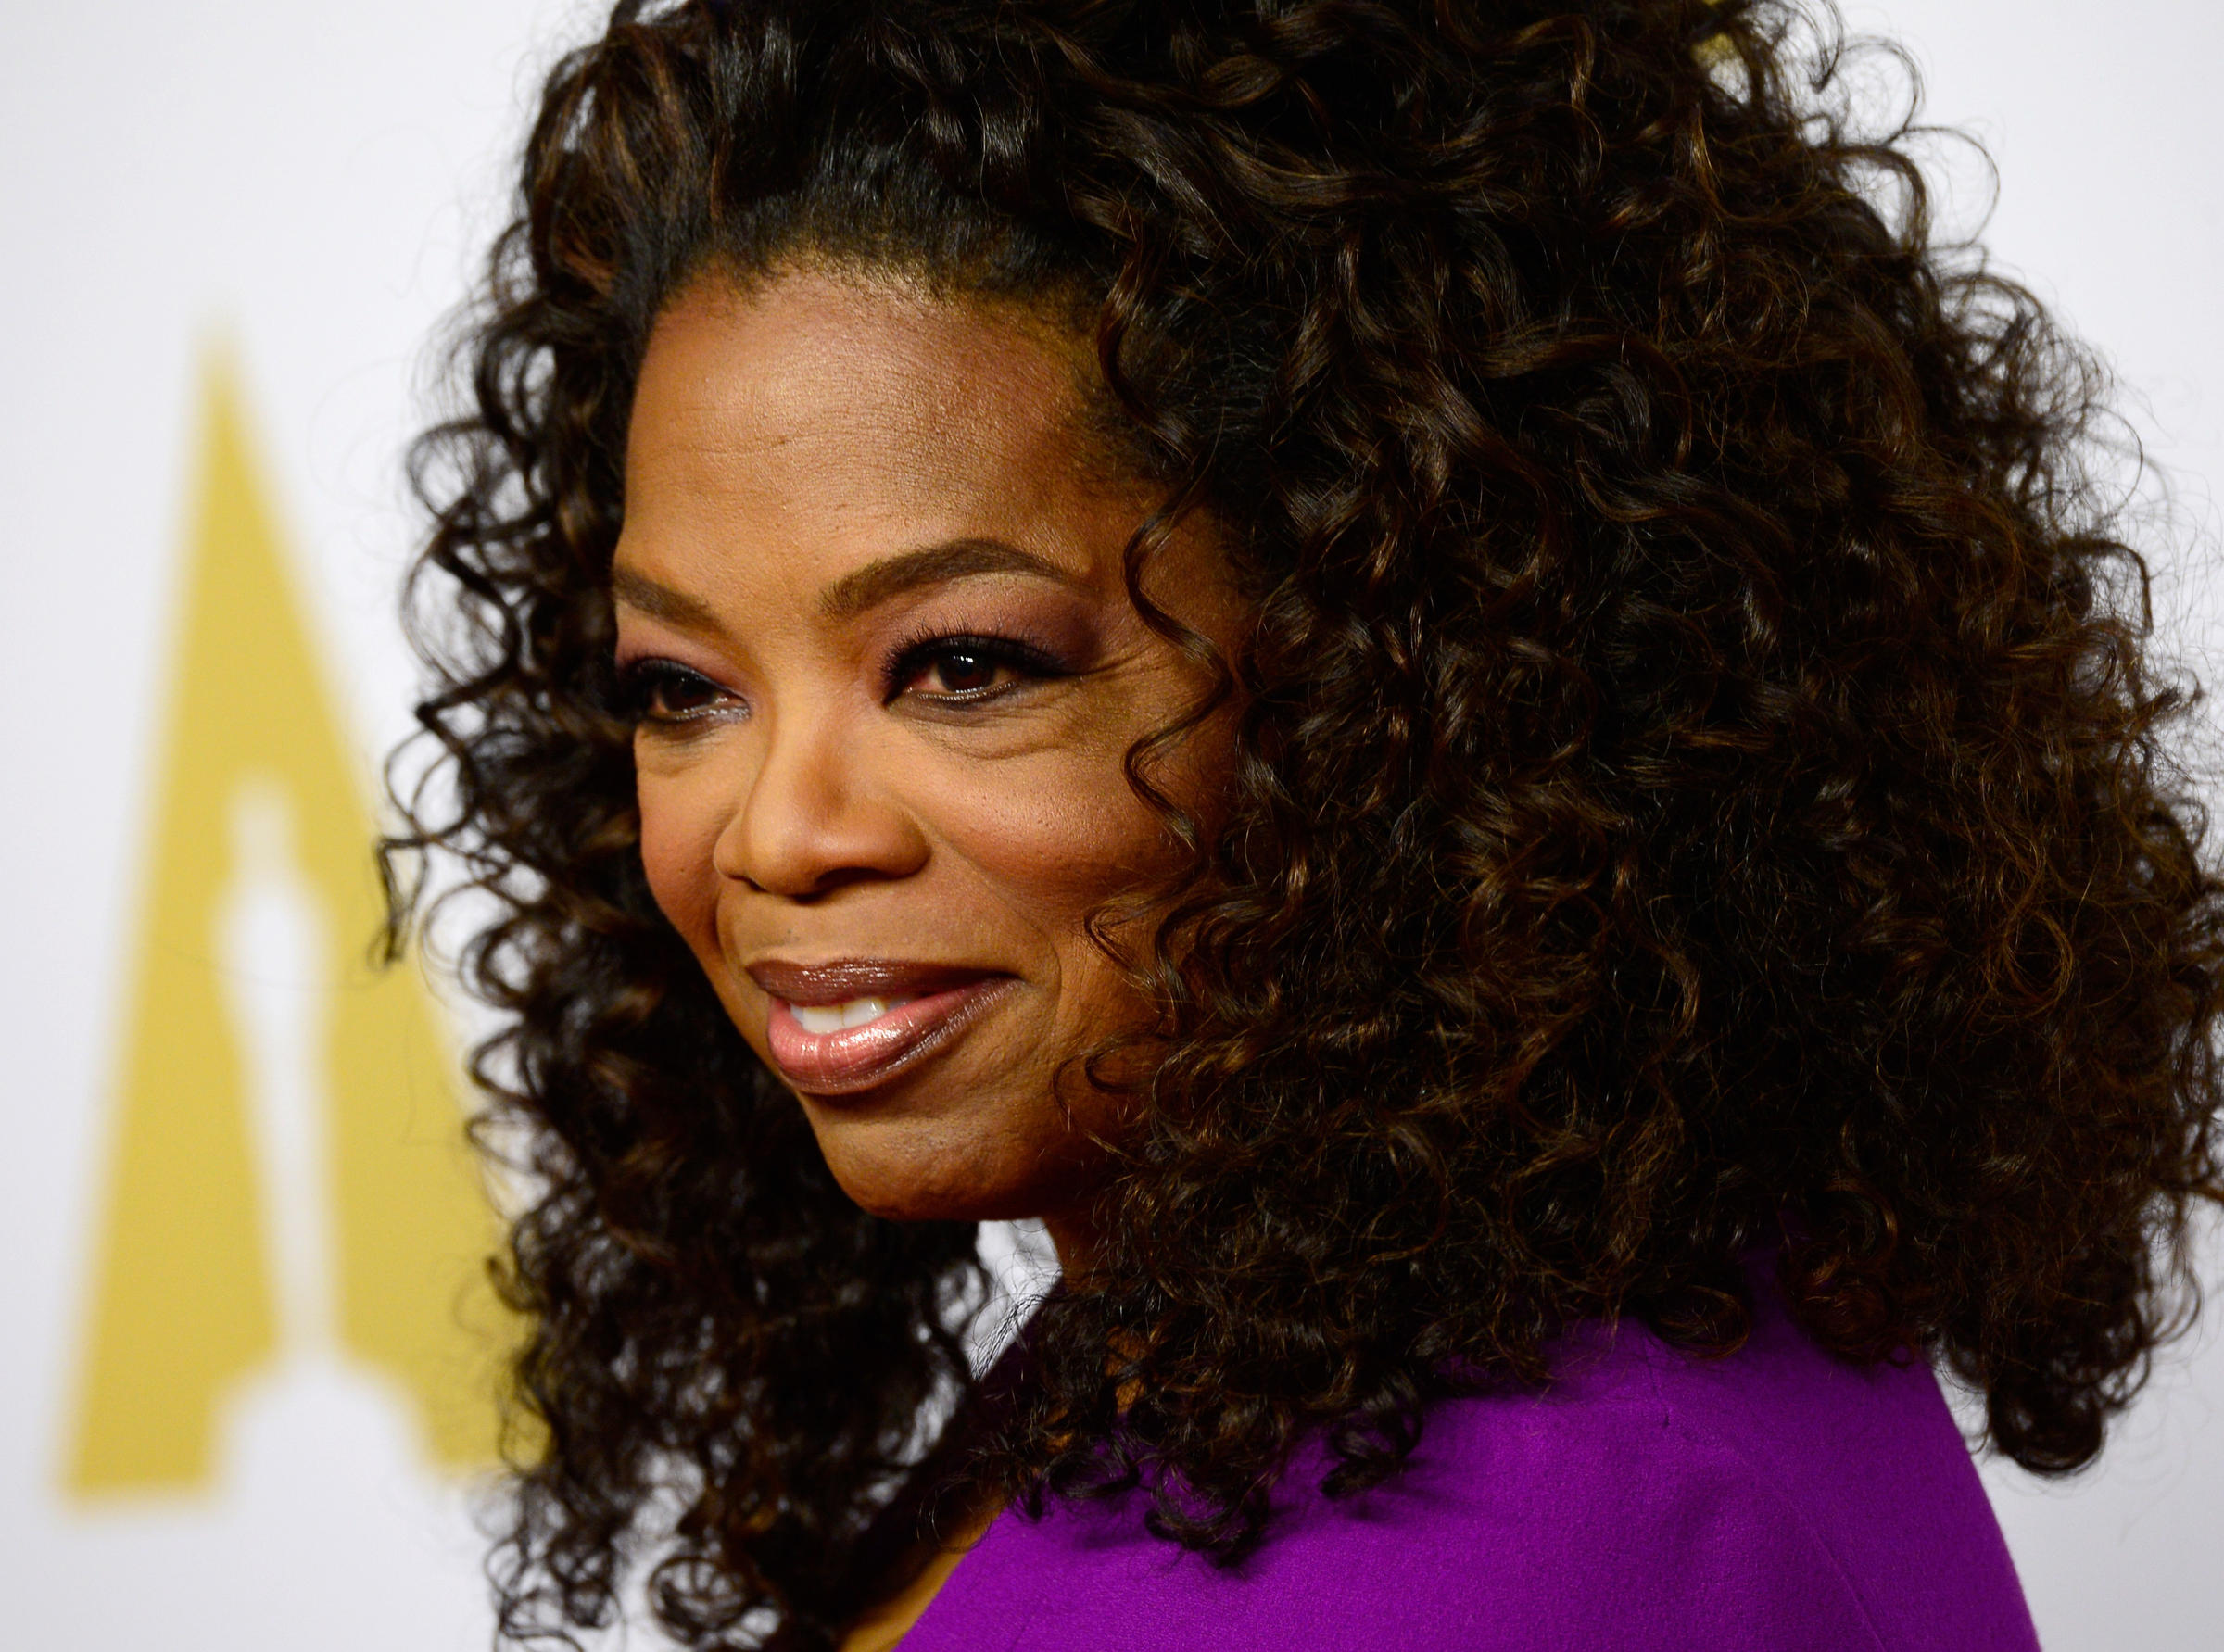 How To Write A College Level Essay Produceractress Oprah Winfrey Attends The Th Annual Academy Awards  Nominee Luncheon At The Beverly Hilton Hotel On February   In Beverly  Hills  Restaurant Review Essay also Same Sex Marriage Essay Titles Essay Oprah  Me  Wuwm Test Essay For Plagiarism